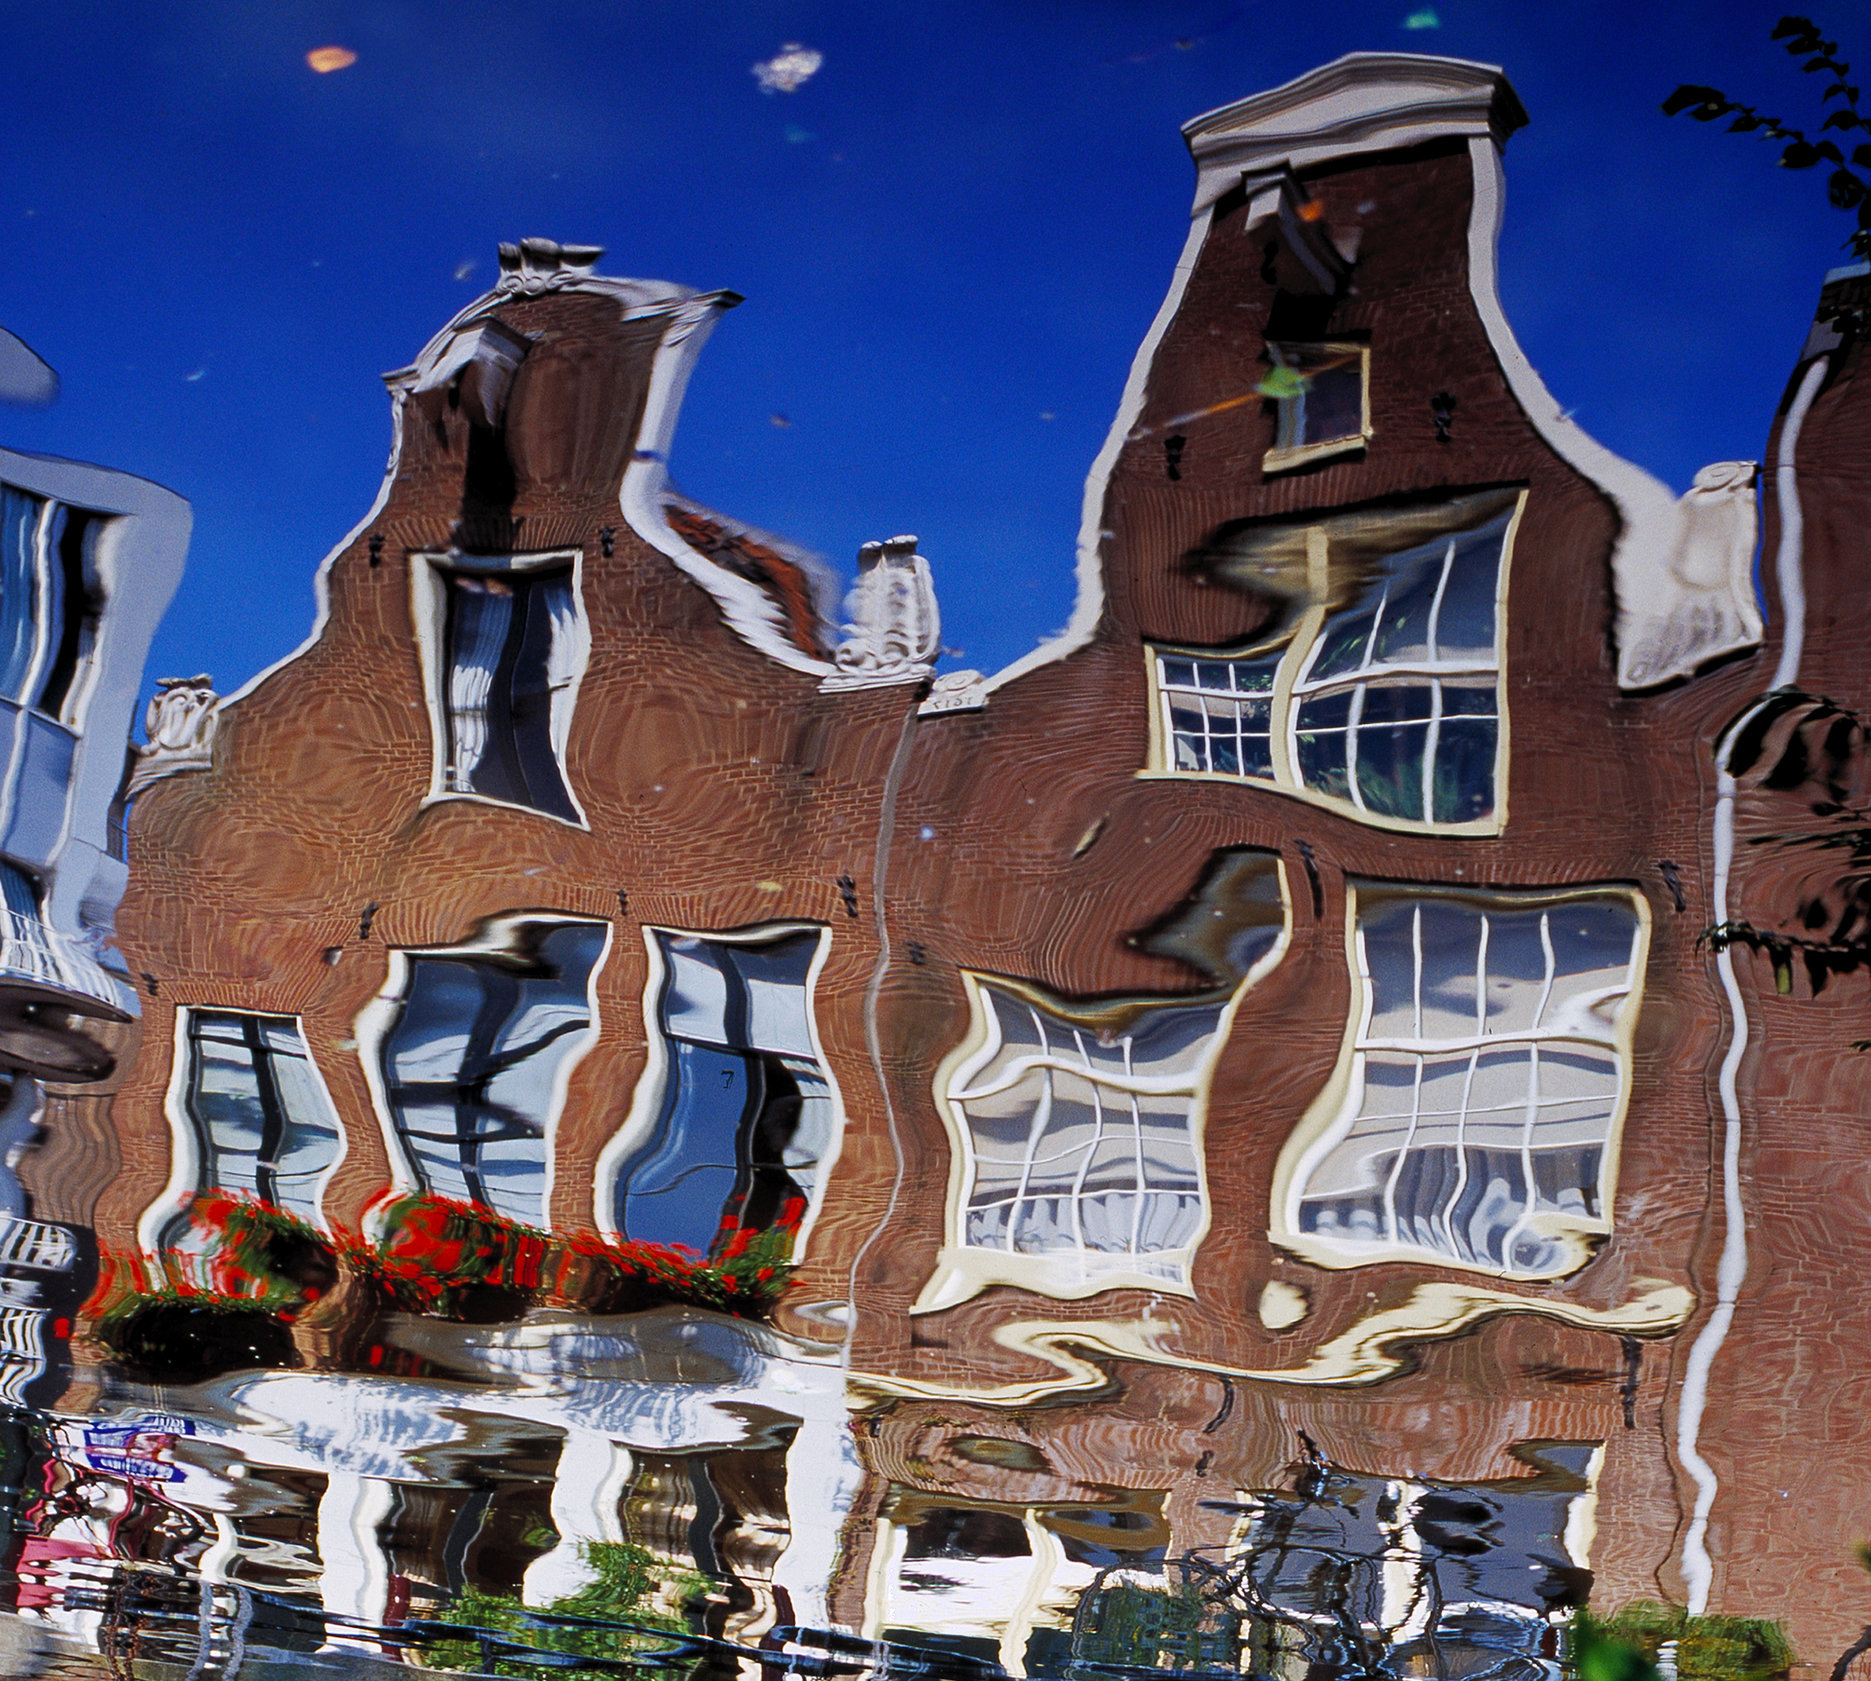 Gables_amsterdam©oliviarutherford-.jpg